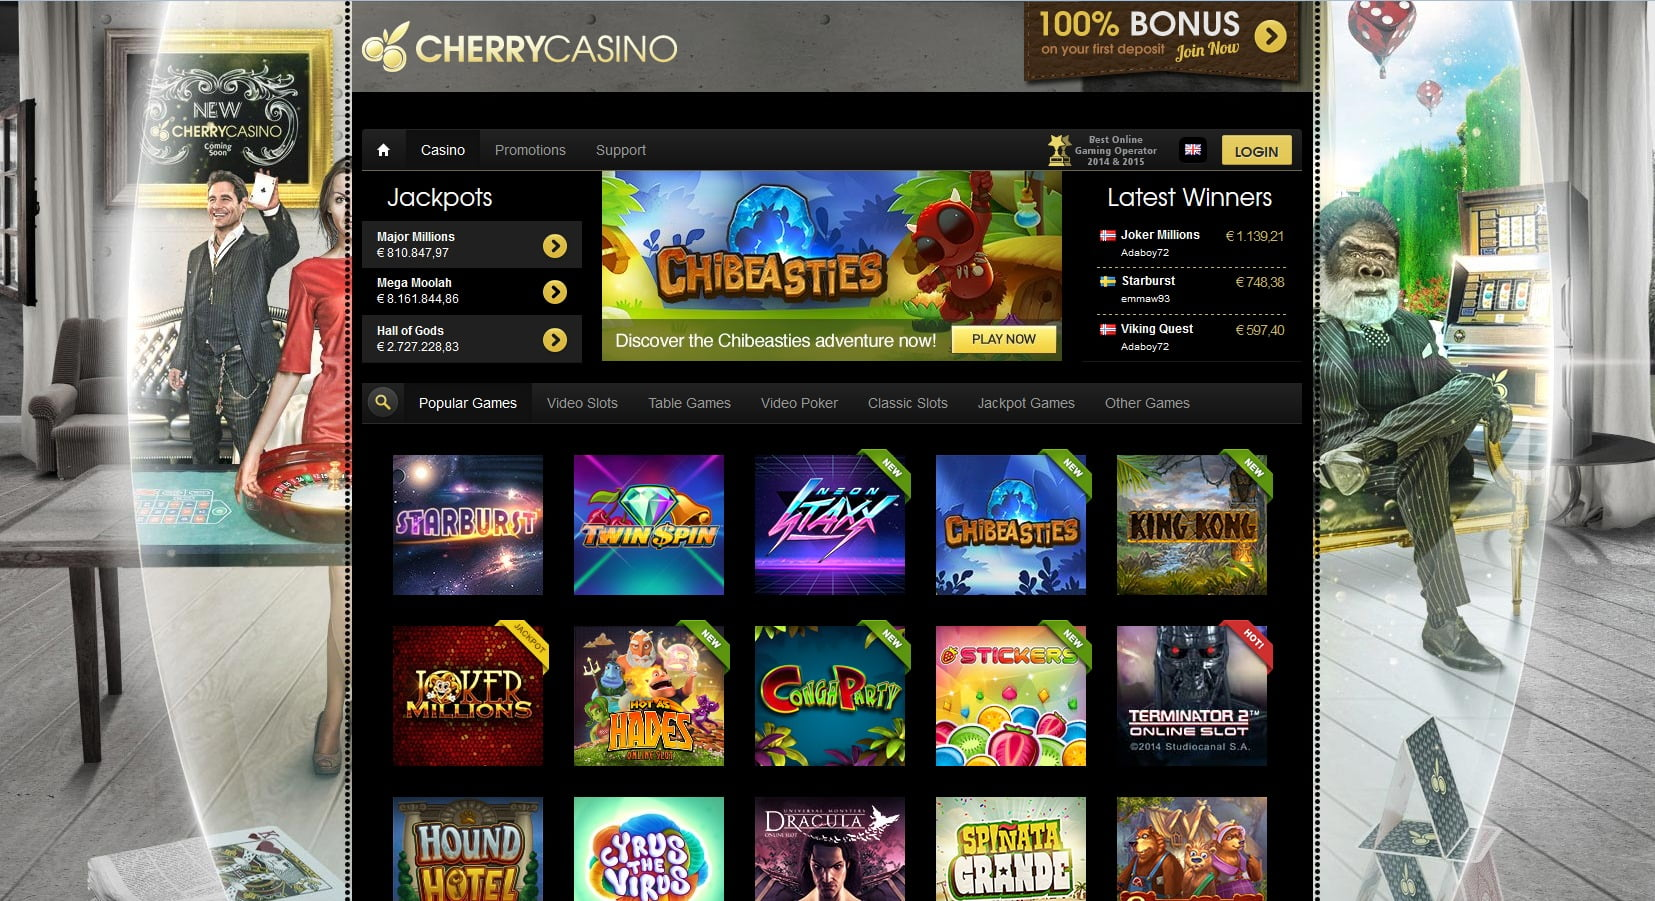 Värdera odds cherry casino nordicbet